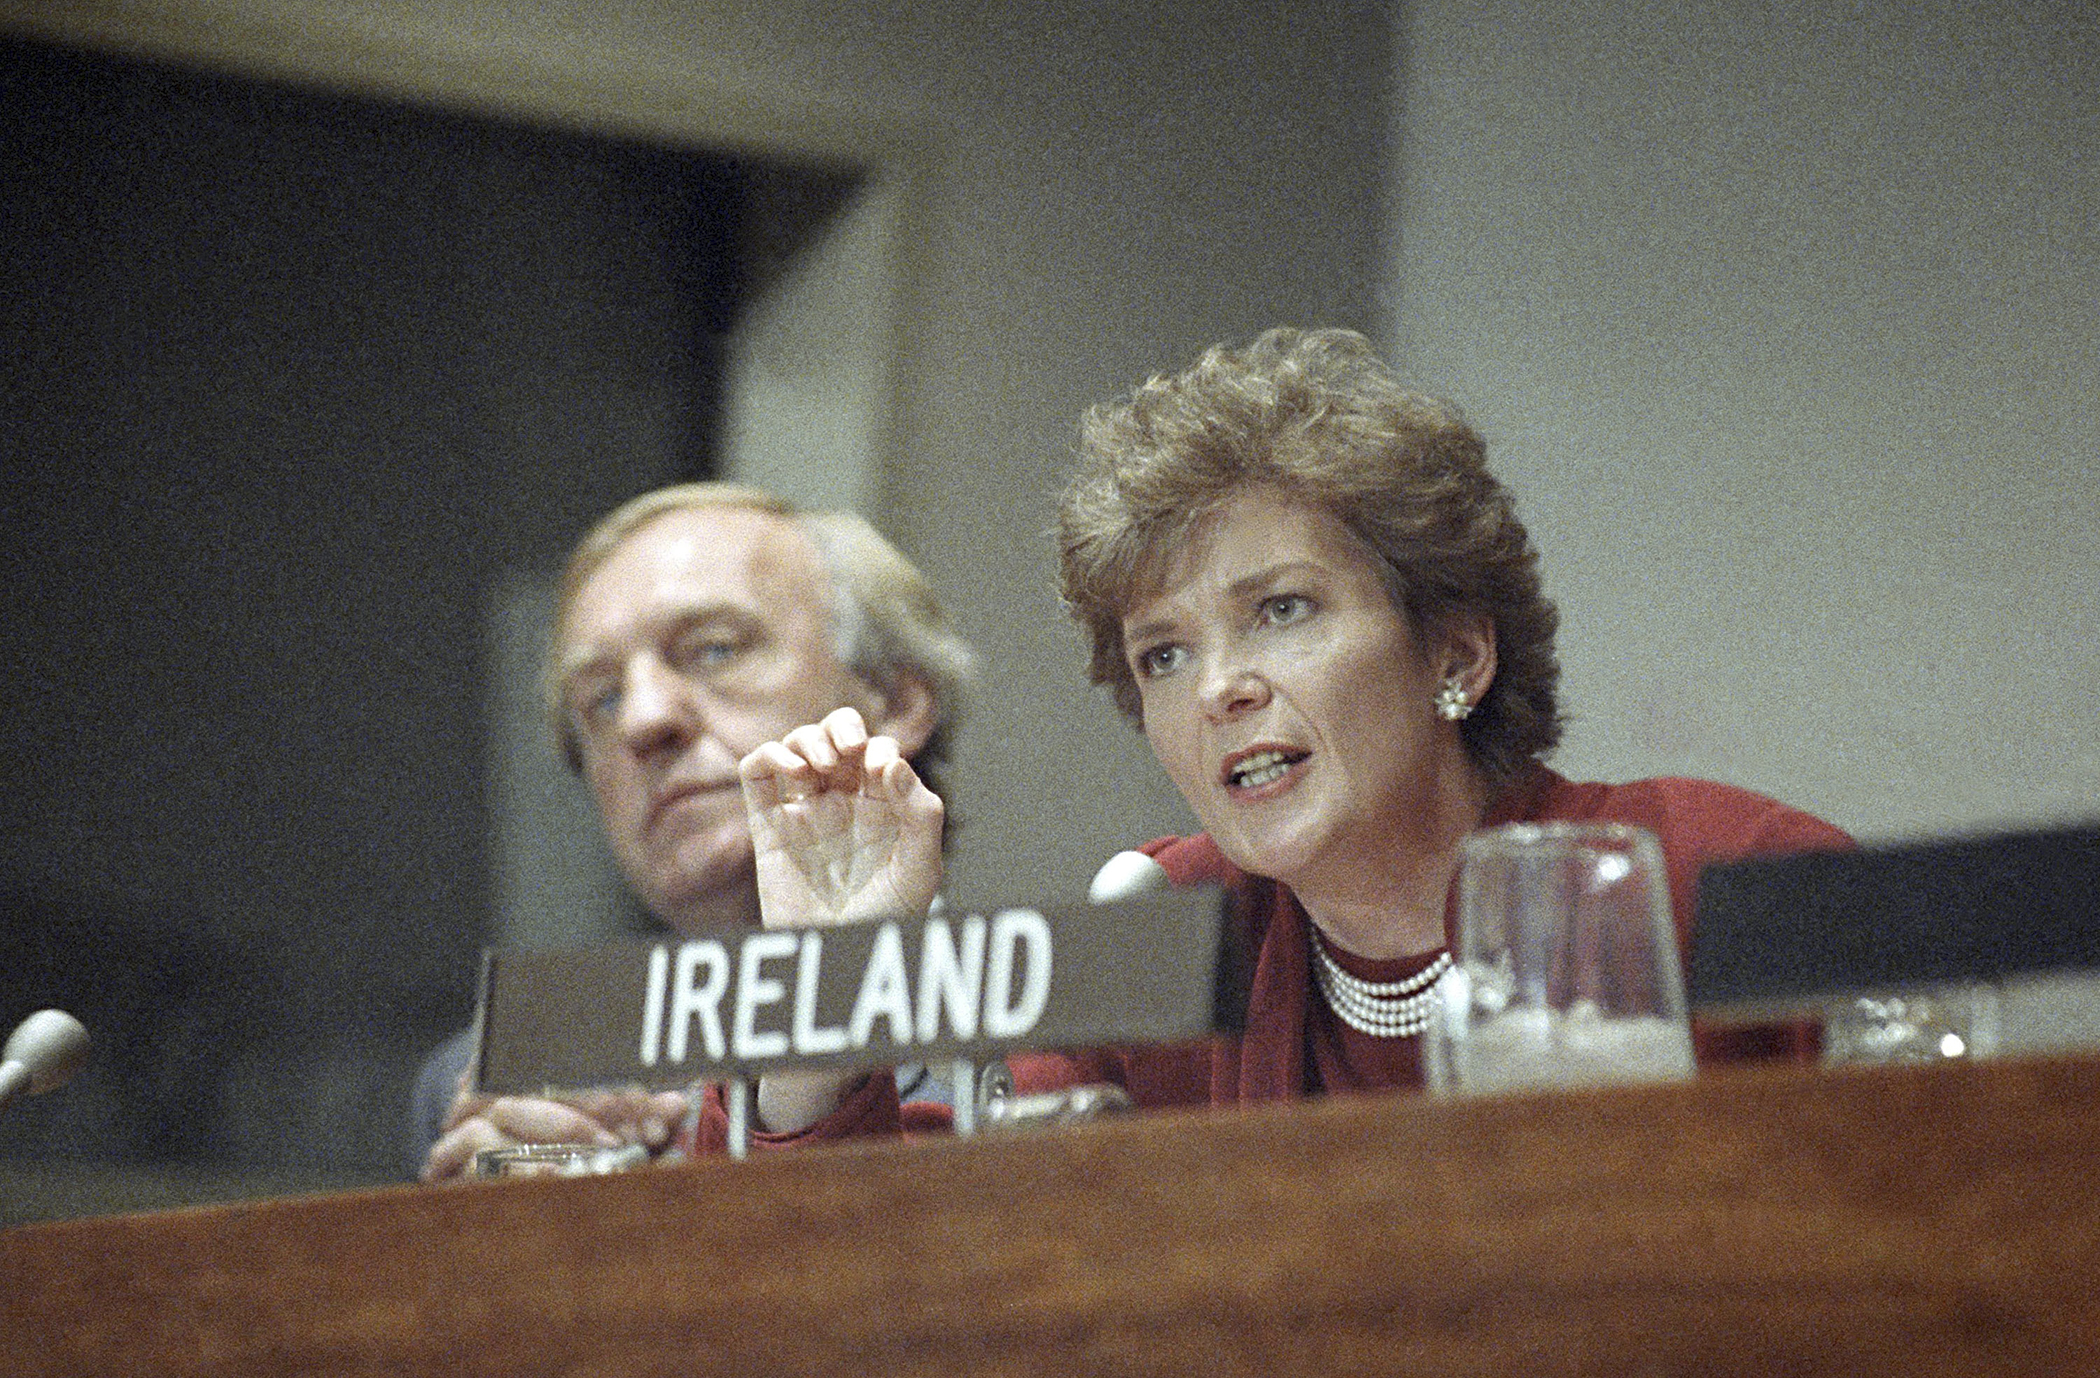 Irish President Mary Robinson, right, is joined by Irish Foreign Minister David Andrews during a news conference at the United Nations, October 7, 1992, New York.